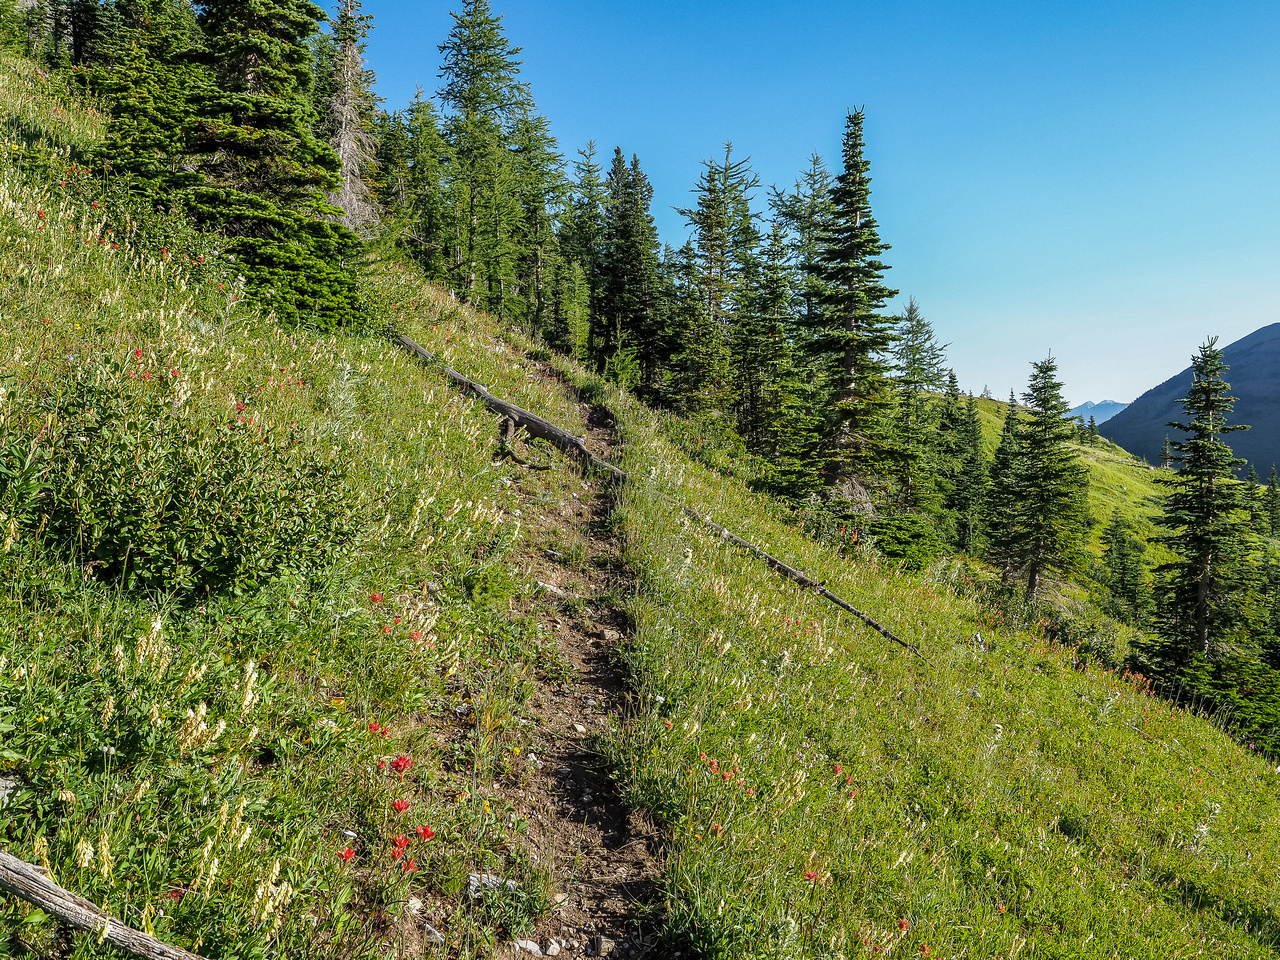 The good trail that will eventually contour around to Hill of the Flowers at right.